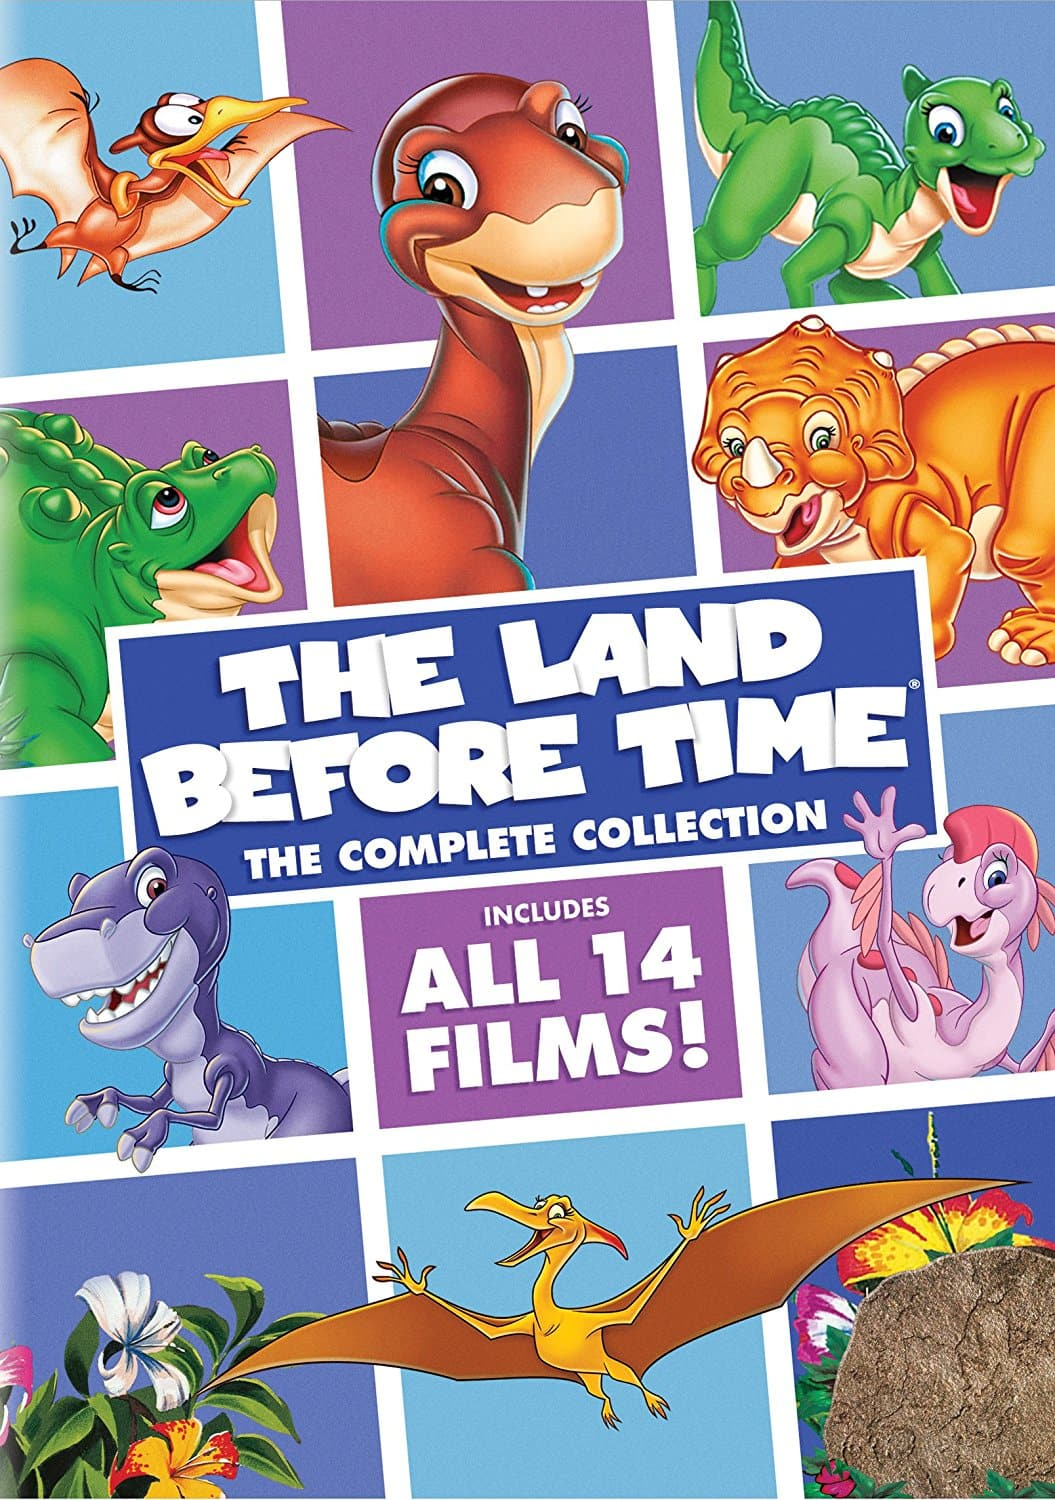 The Land Before Time: The Complete Collection - 8 Discs [14 Films) - $22.99 @ Amazon.com